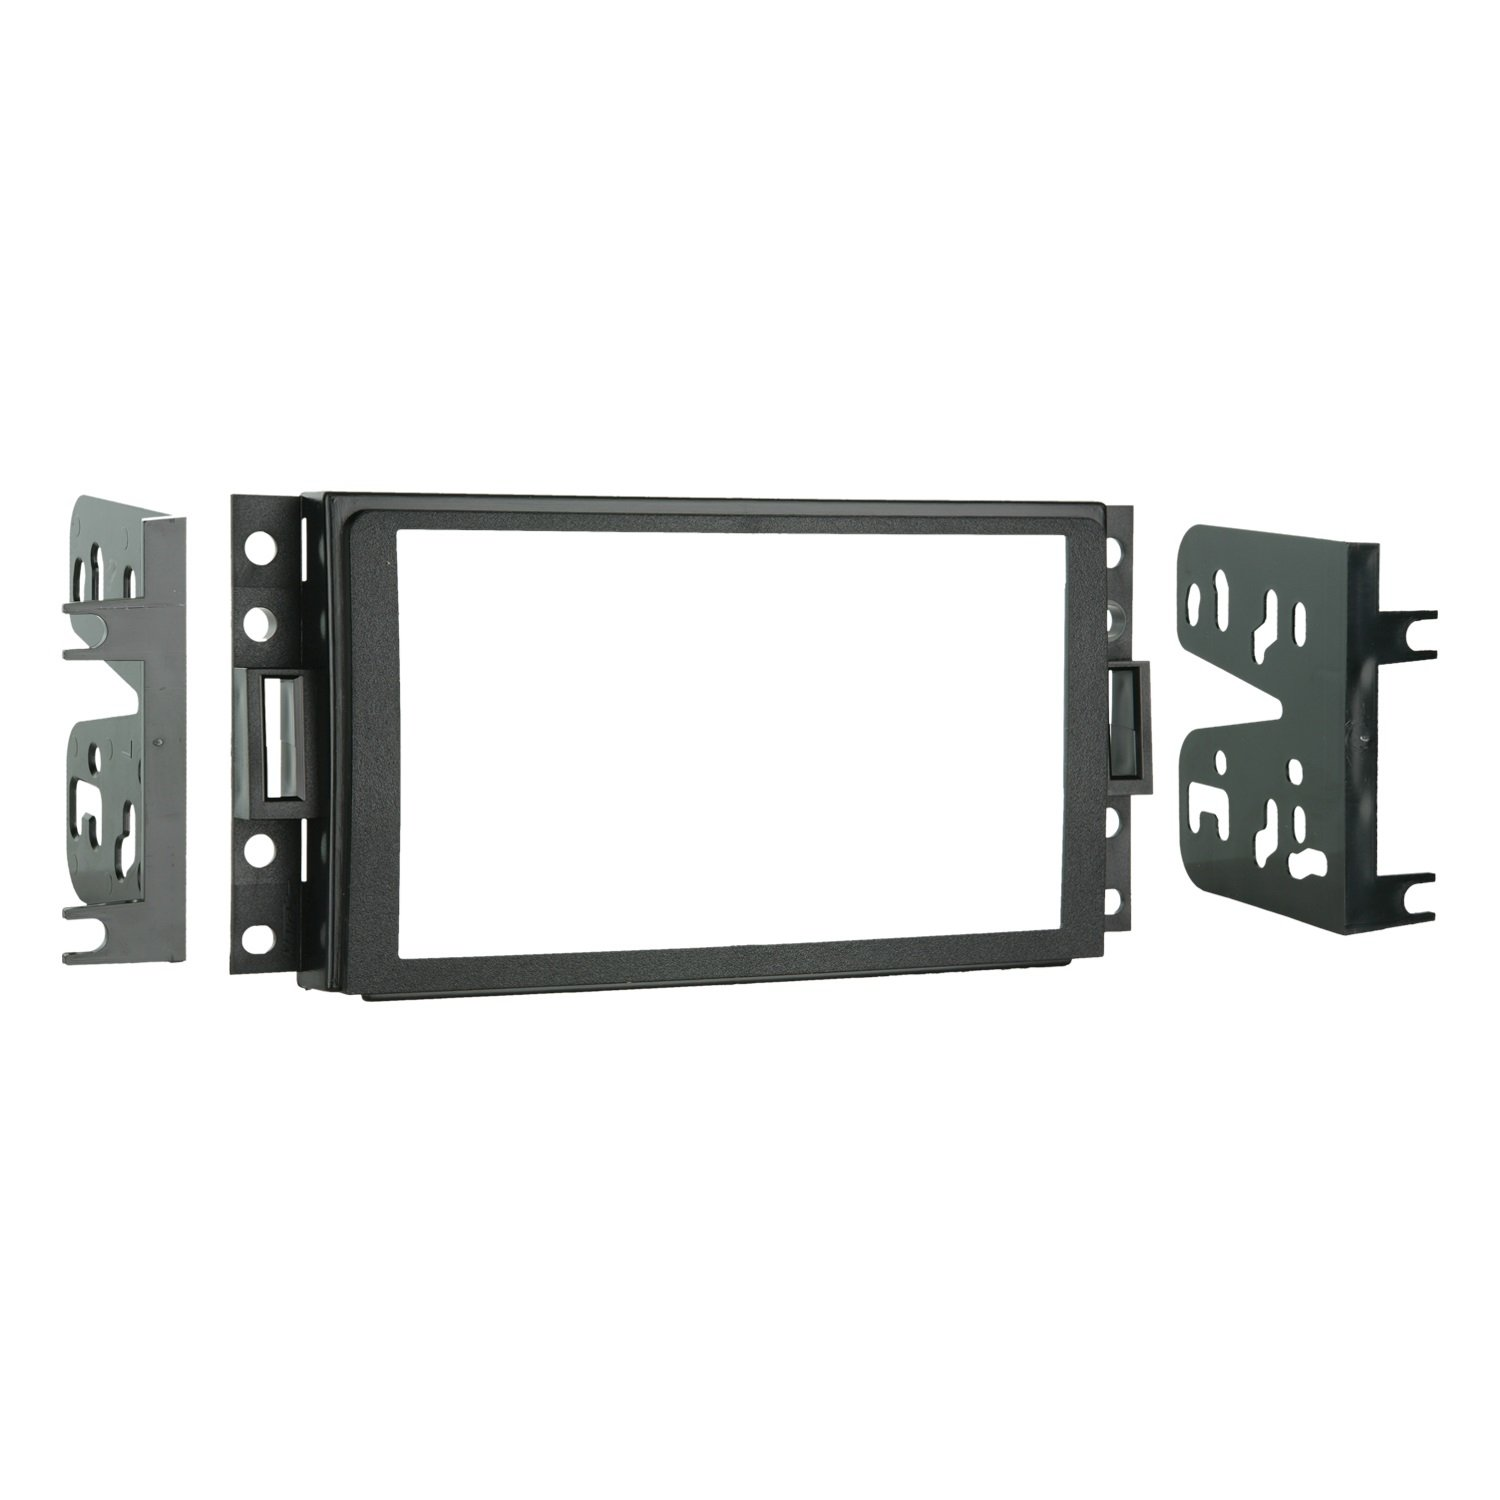 61T6Fq2kP6L._SL1500_ amazon com metra 95 3304 double din installation kit for select  at creativeand.co